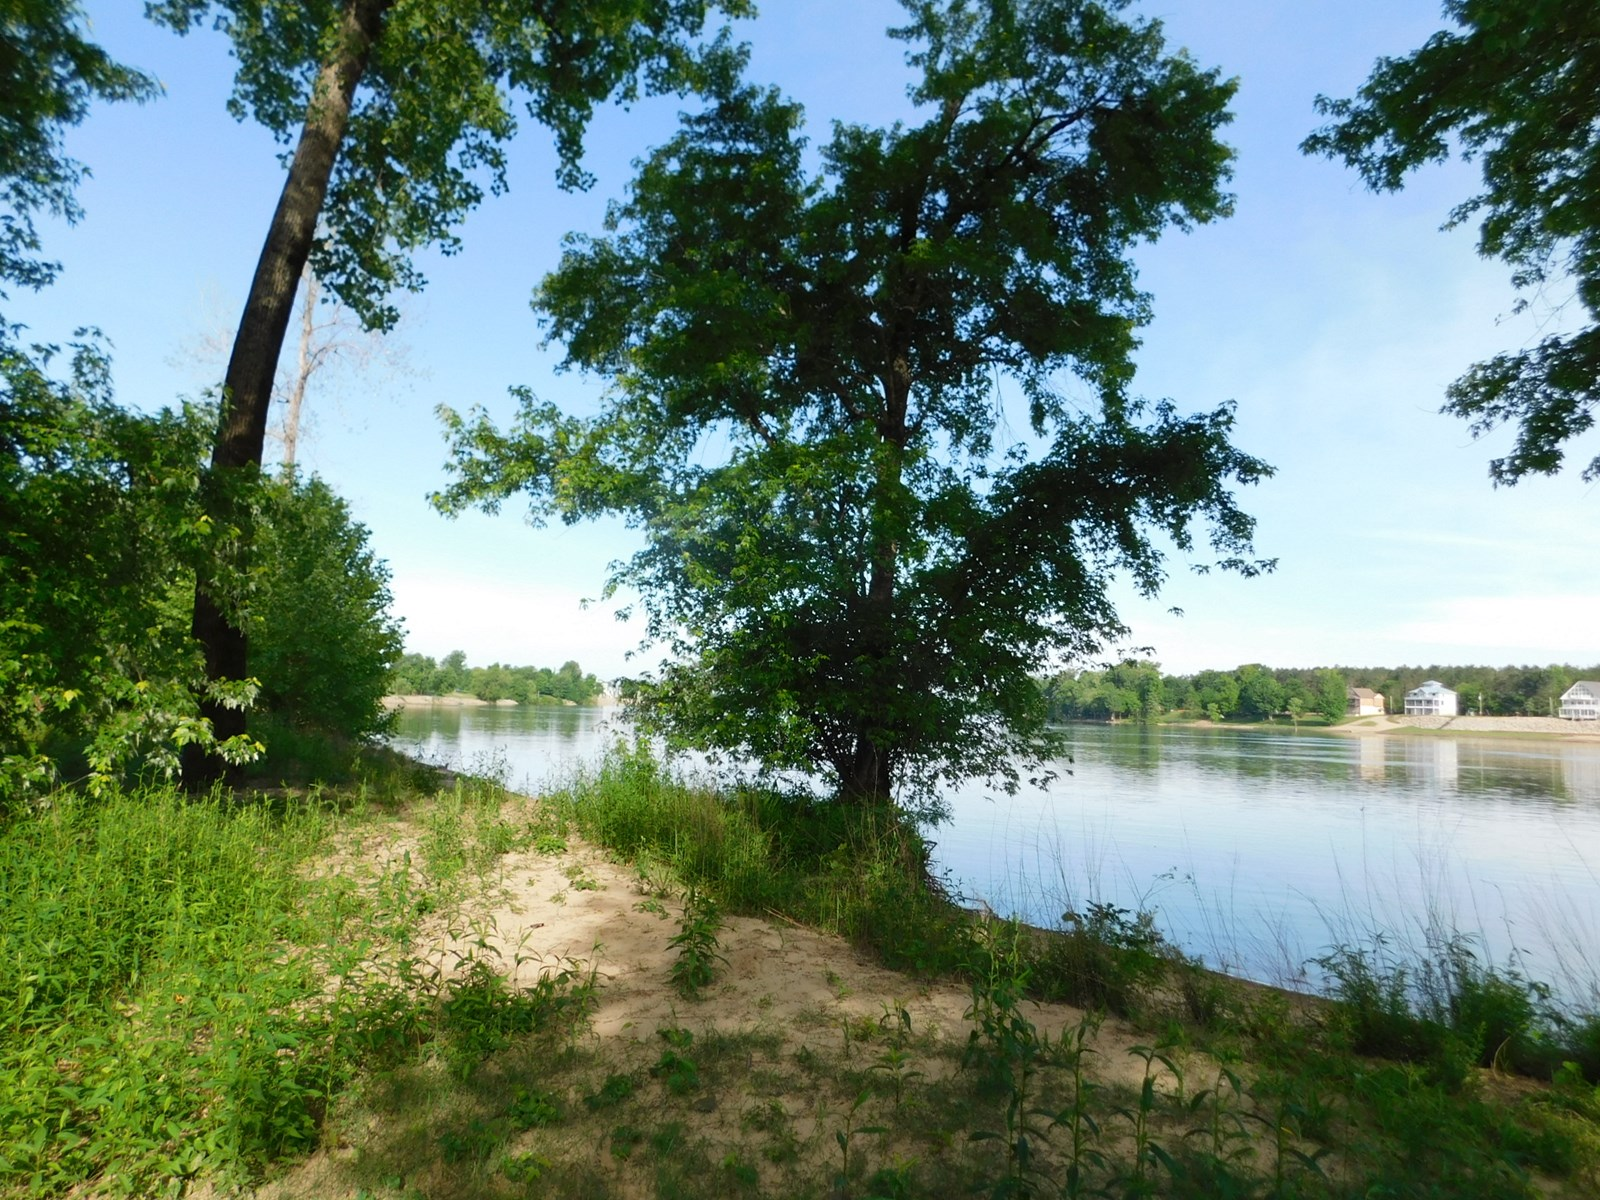 WATERFRONT / TN RIVER FRONT LAND WITH BEACH